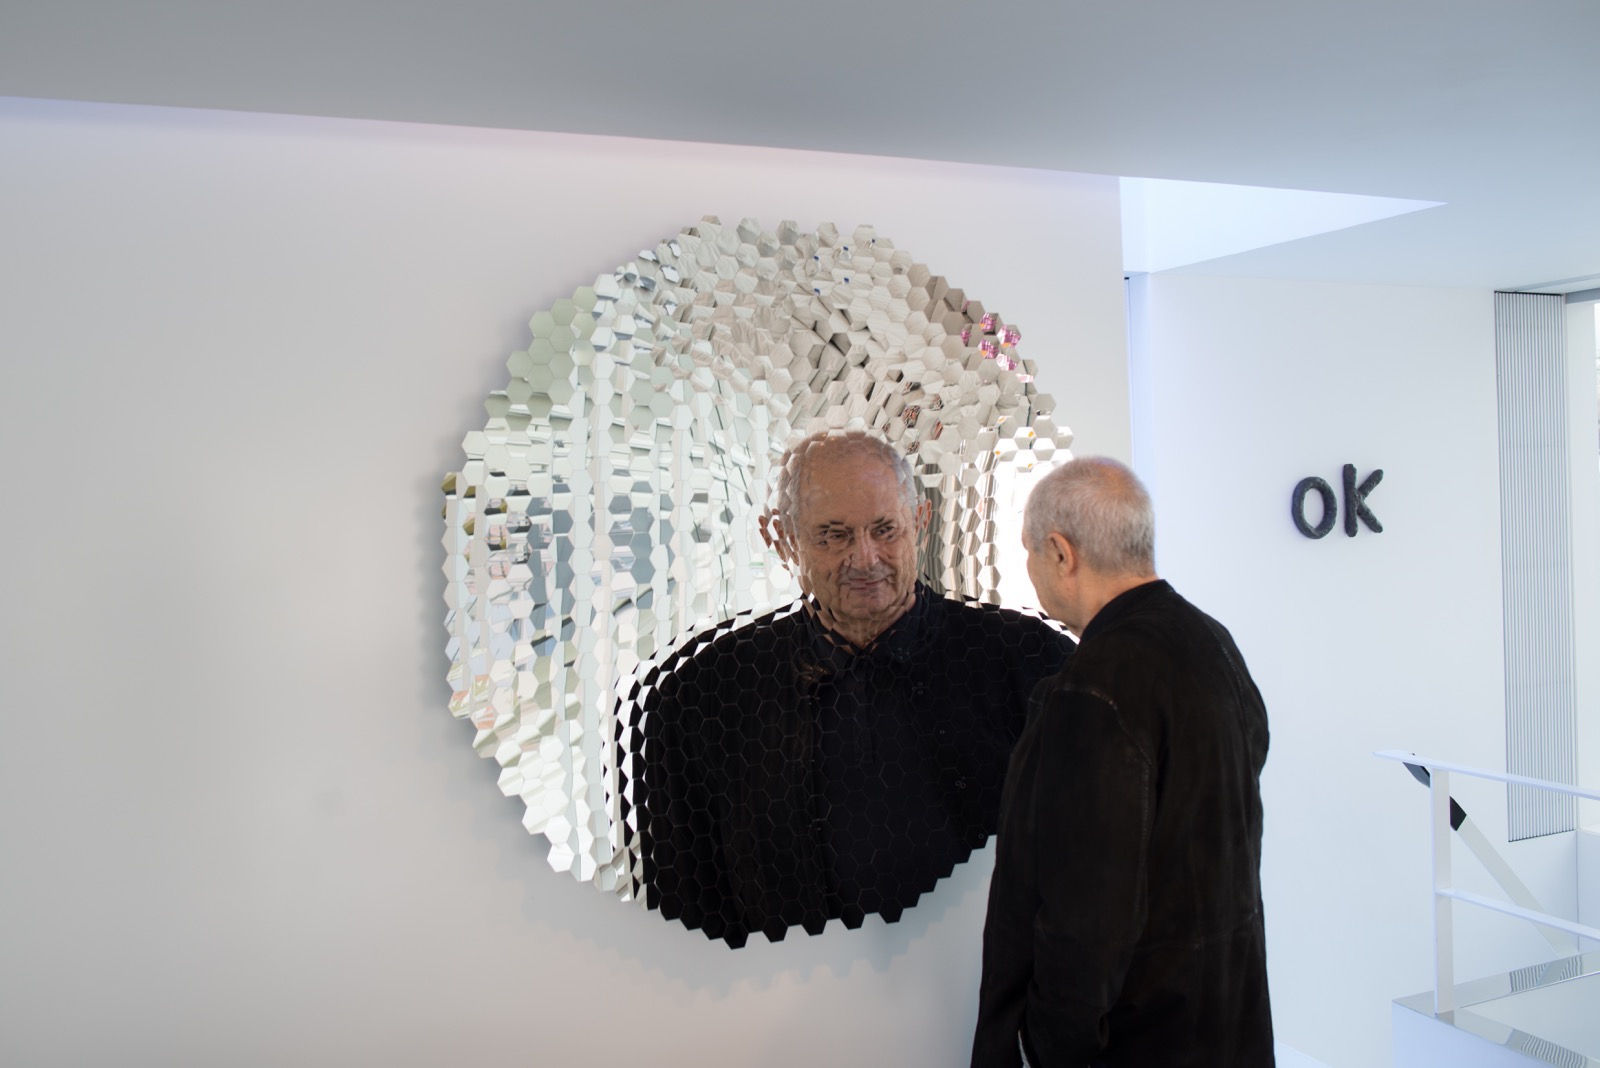 Self portrait Dakis Joannou's reflection in front of the Anish Kapoor mirror sculpture.